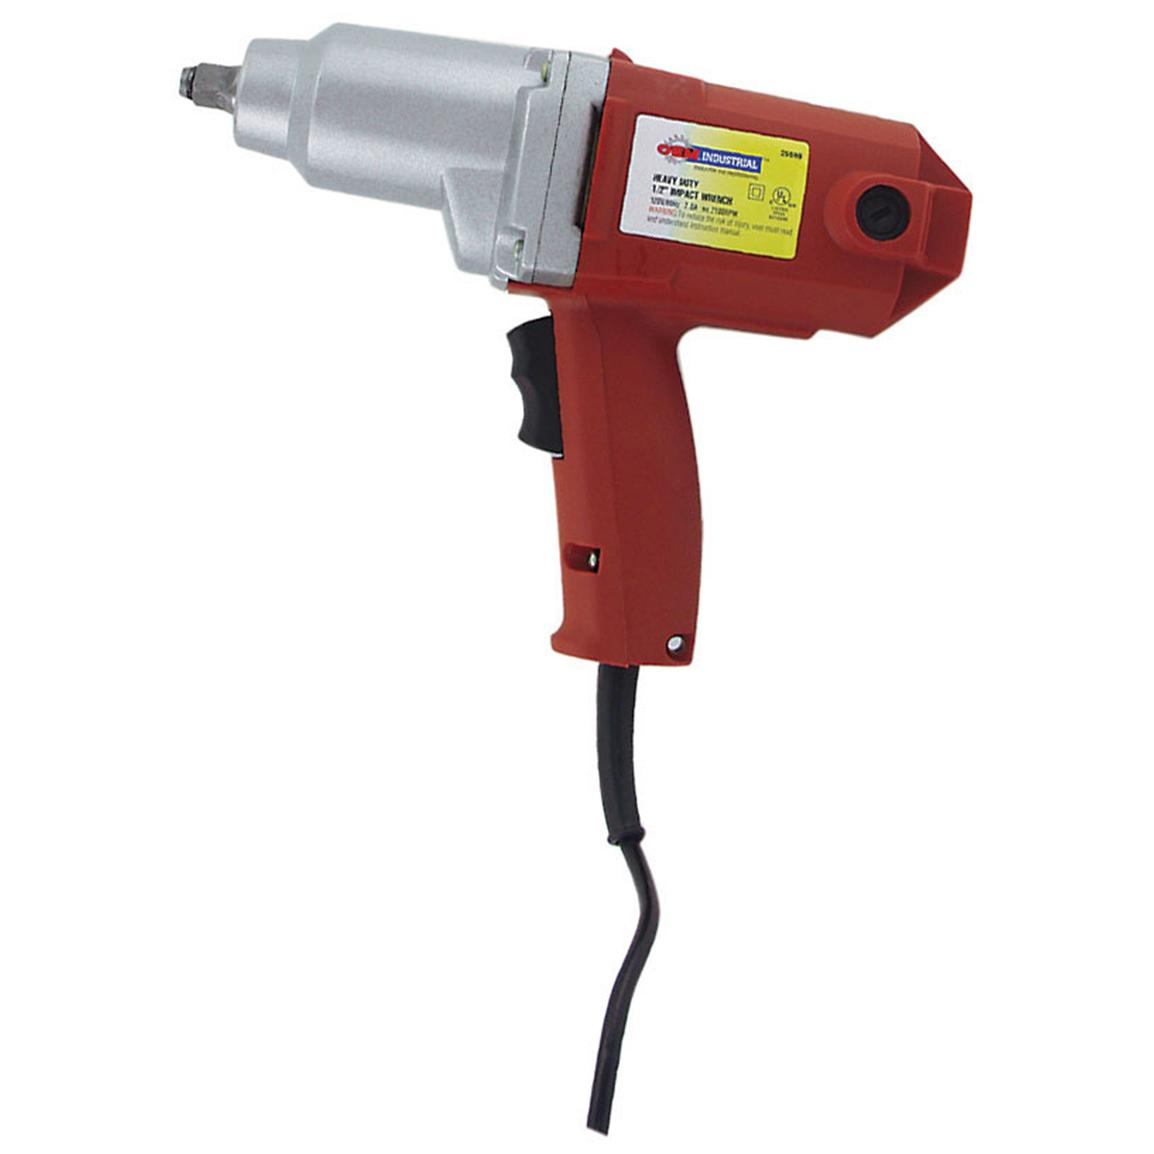 "OEM® 1/2"" Drive Electric Impact Wrench"